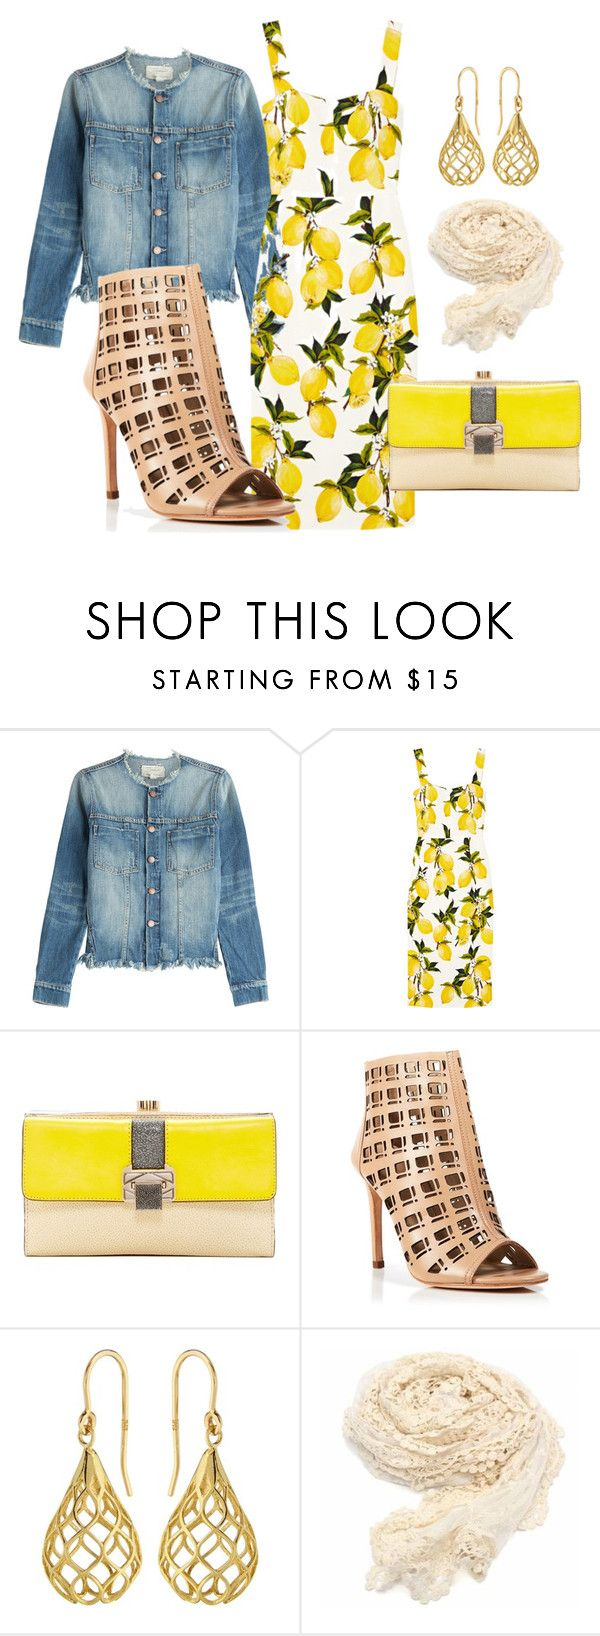 """""""Spring 2"""" by jakjakjak ❤ liked on Polyvore featuring Current/Elliott, Dolce&Gabbana, Rebecca Minkoff, Charles David, Elements, women's clothing, women, female, woman and misses"""